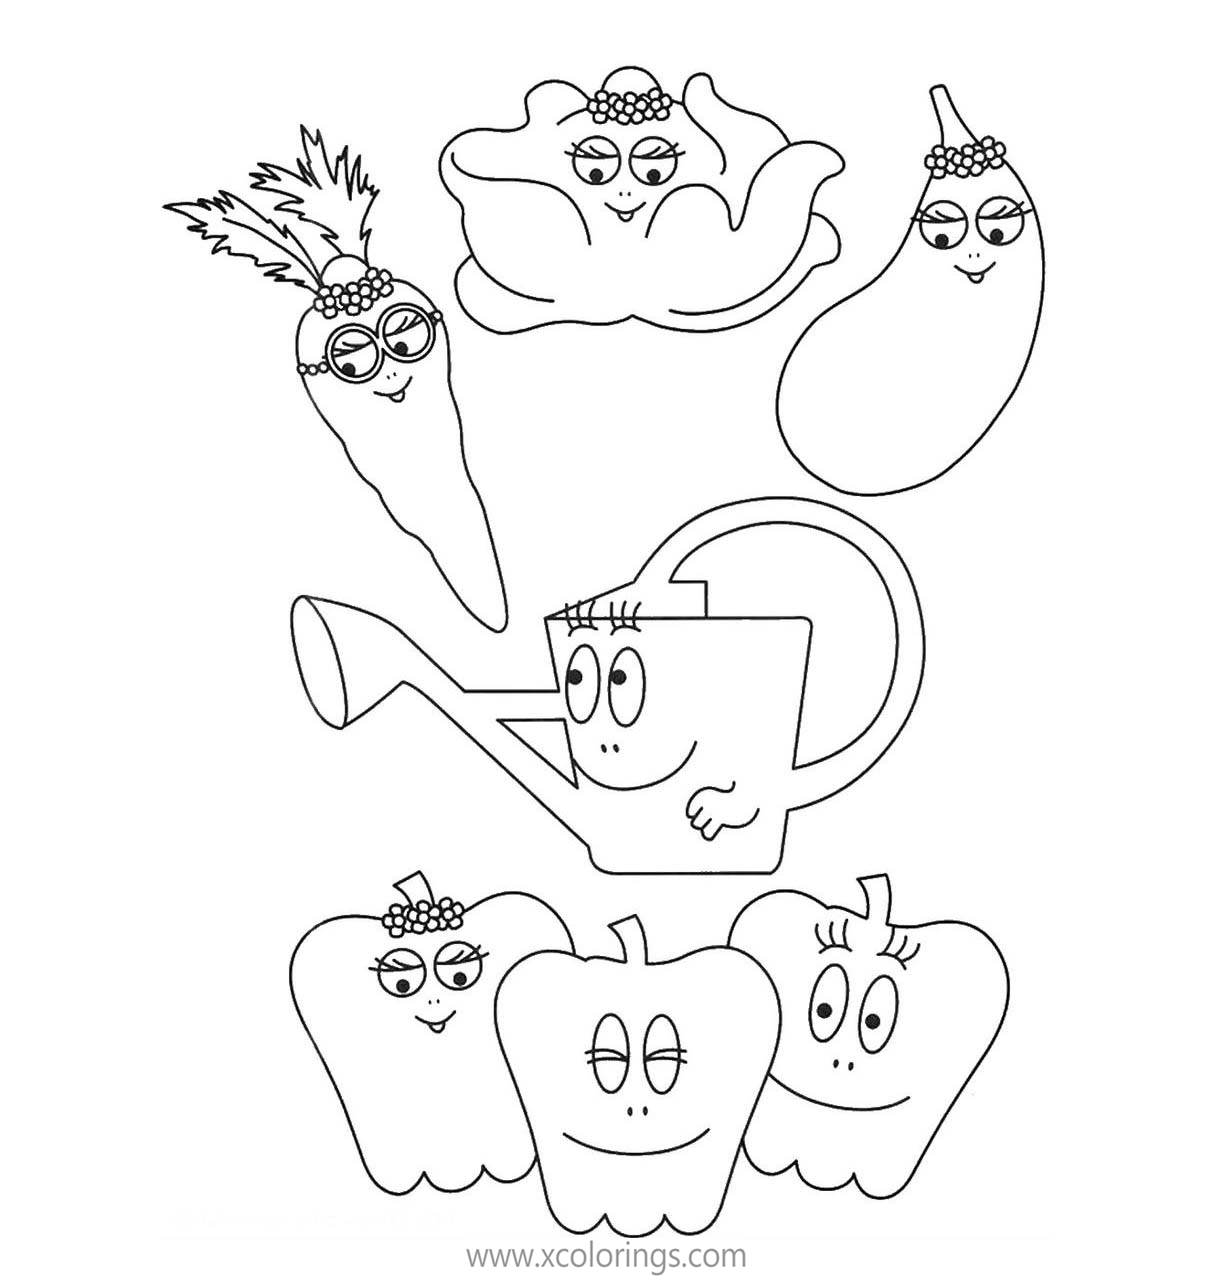 Barbapapa Coloring Pages Vegetables Xcolorings Com